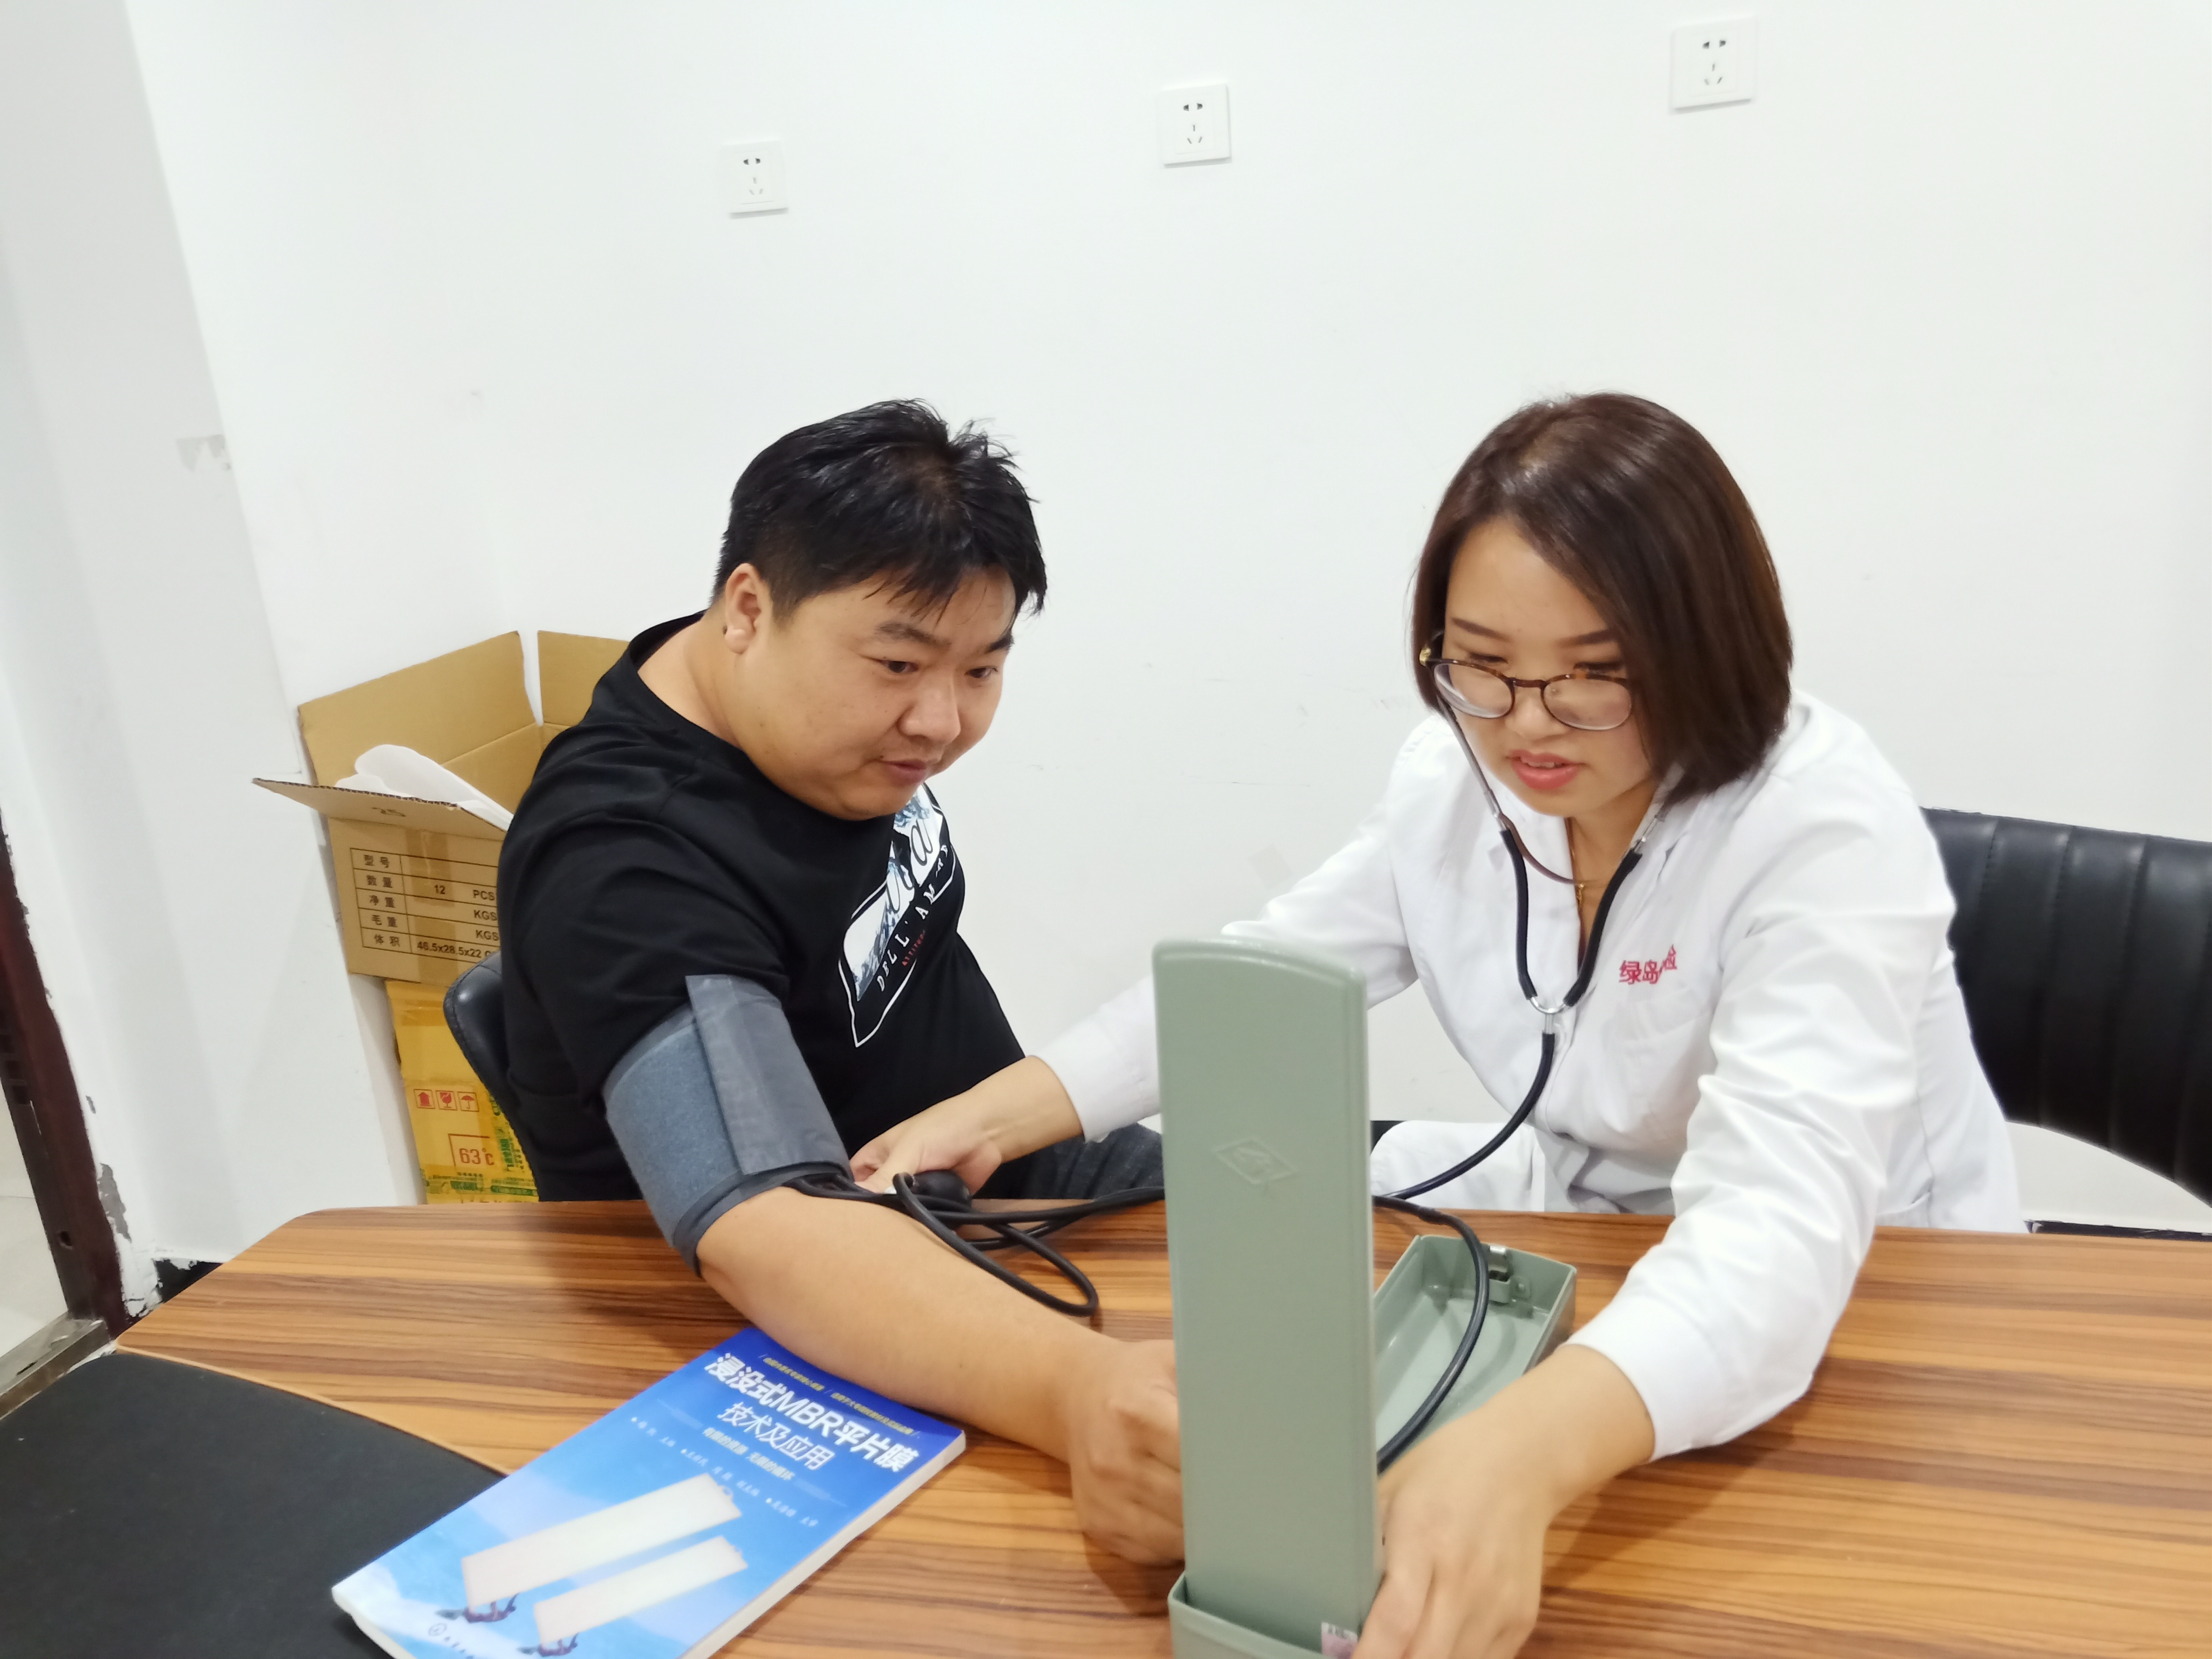 Physical examination of employees during covid19